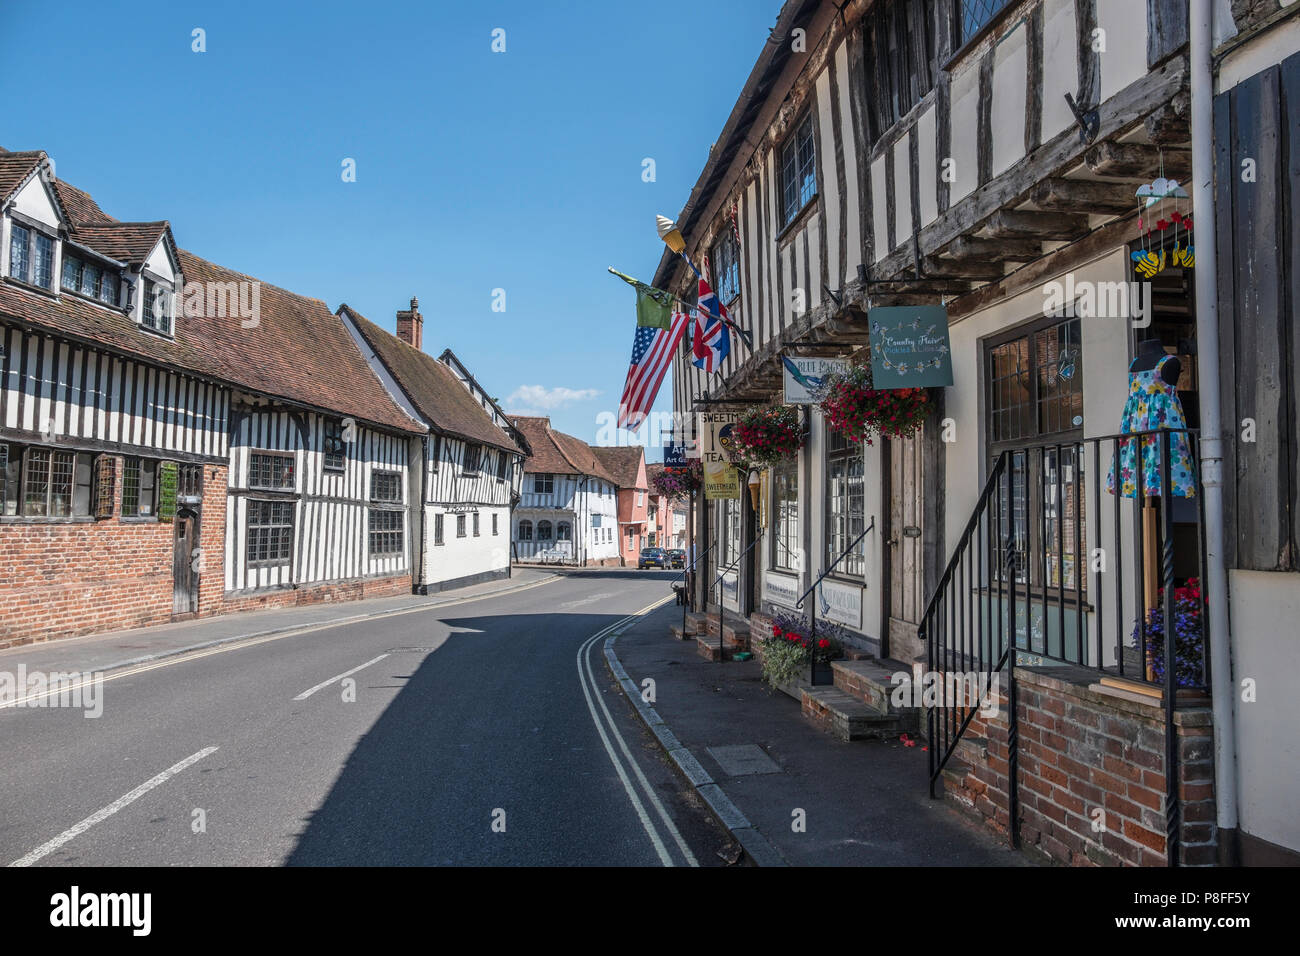 Timber framed buildings in Water Street Lavenham; a town noted for its 15th-century church and half-timbered medieval cottages. - Stock Image